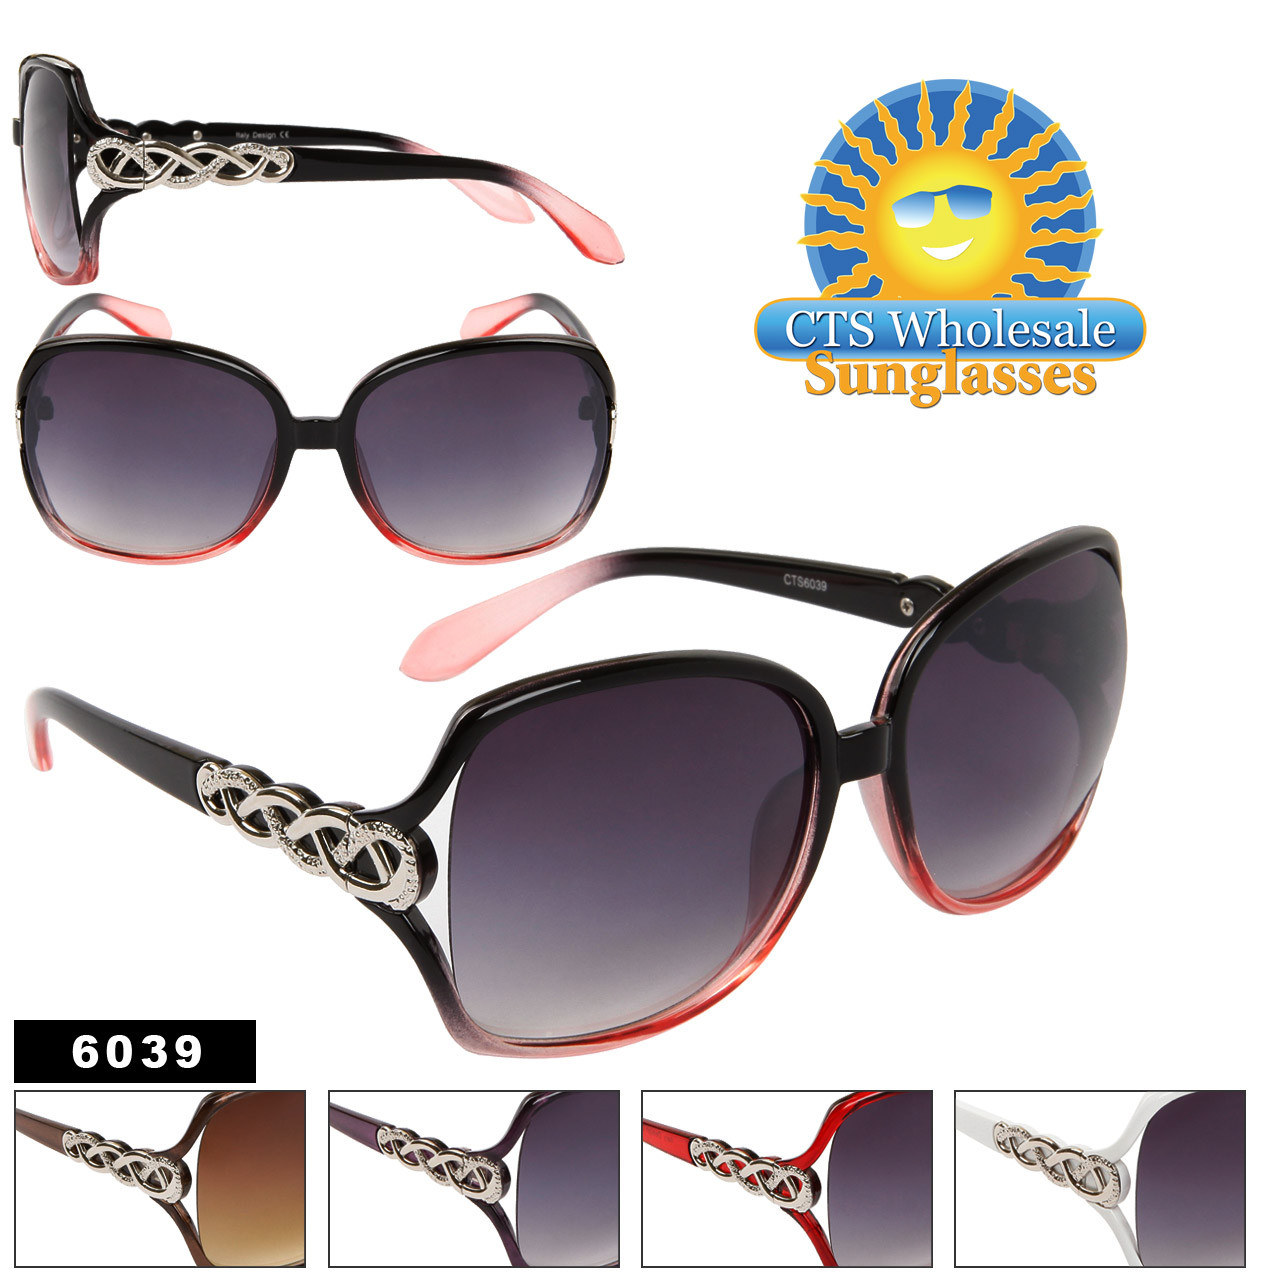 Wholesale Women's Fashion Sunglasses 6039 (Assorted Colors) (12 pcs.)